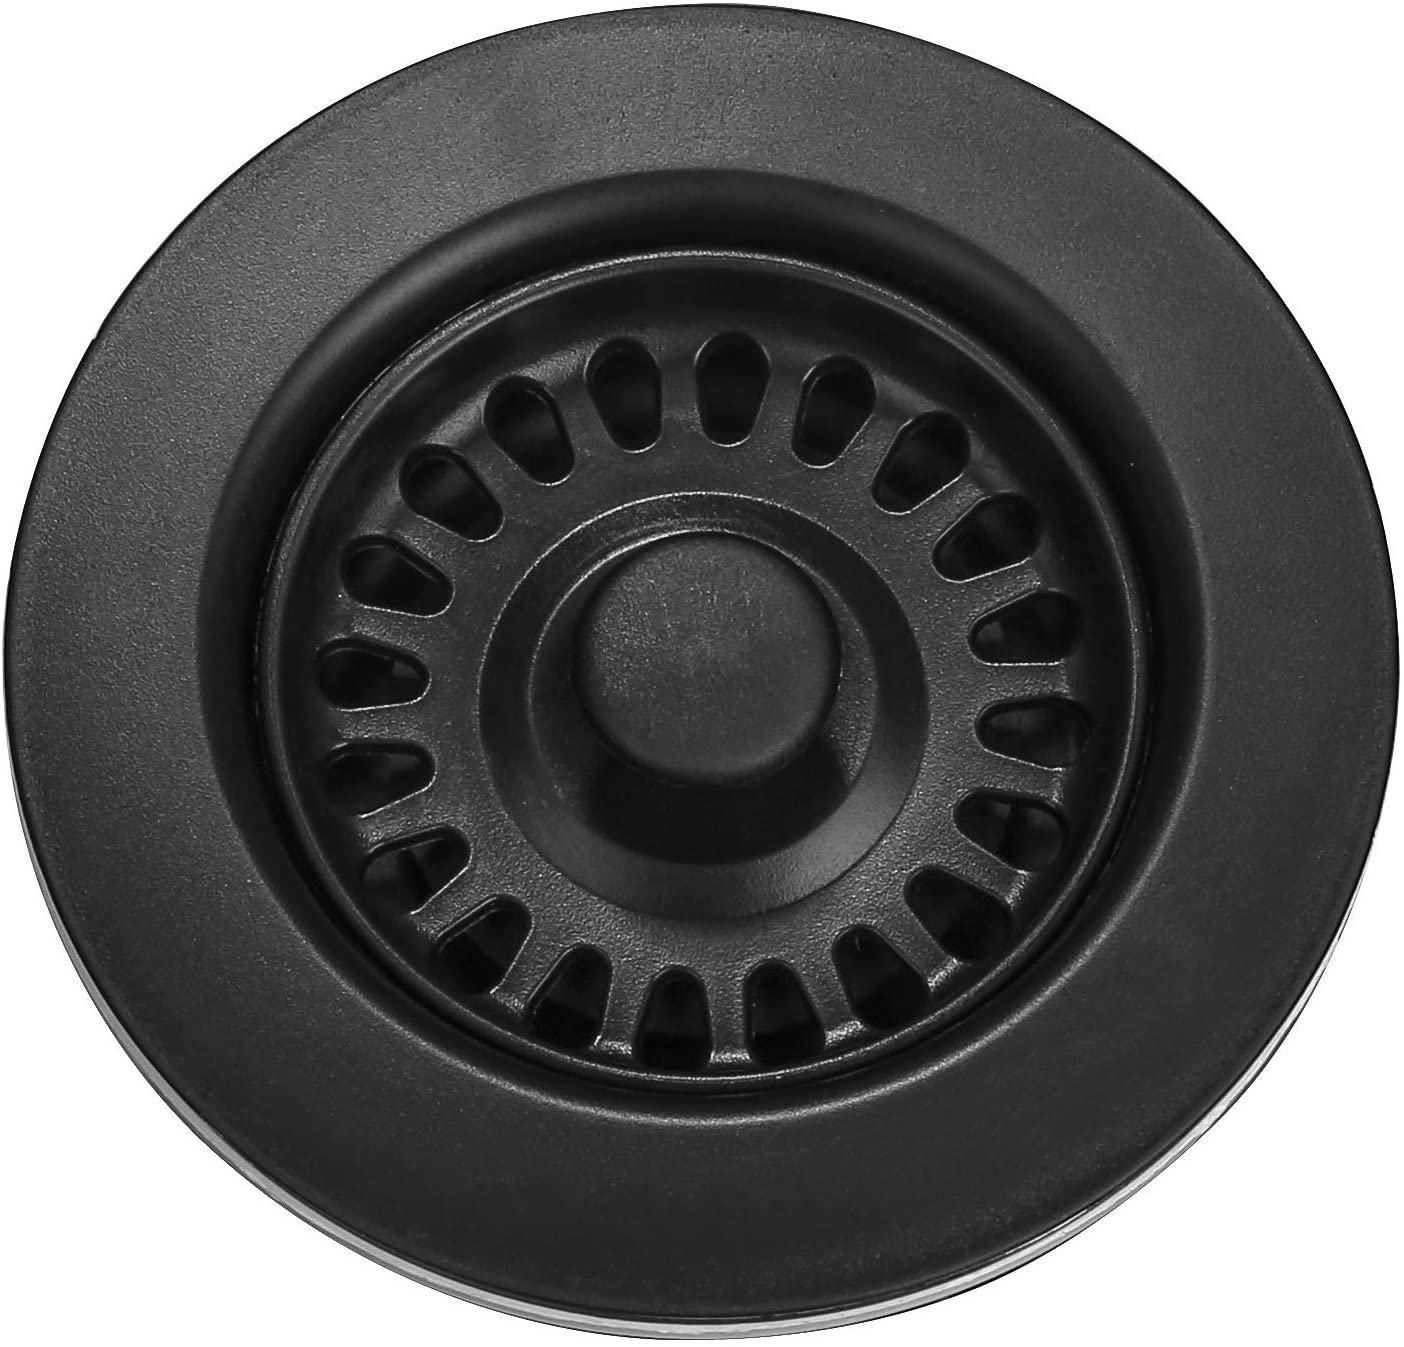 Black Serene Valley 3-1//2 inch Kitchen Sink Strainer Assembly with Stopper for Matching Color of Granite or Fireclay Sinks